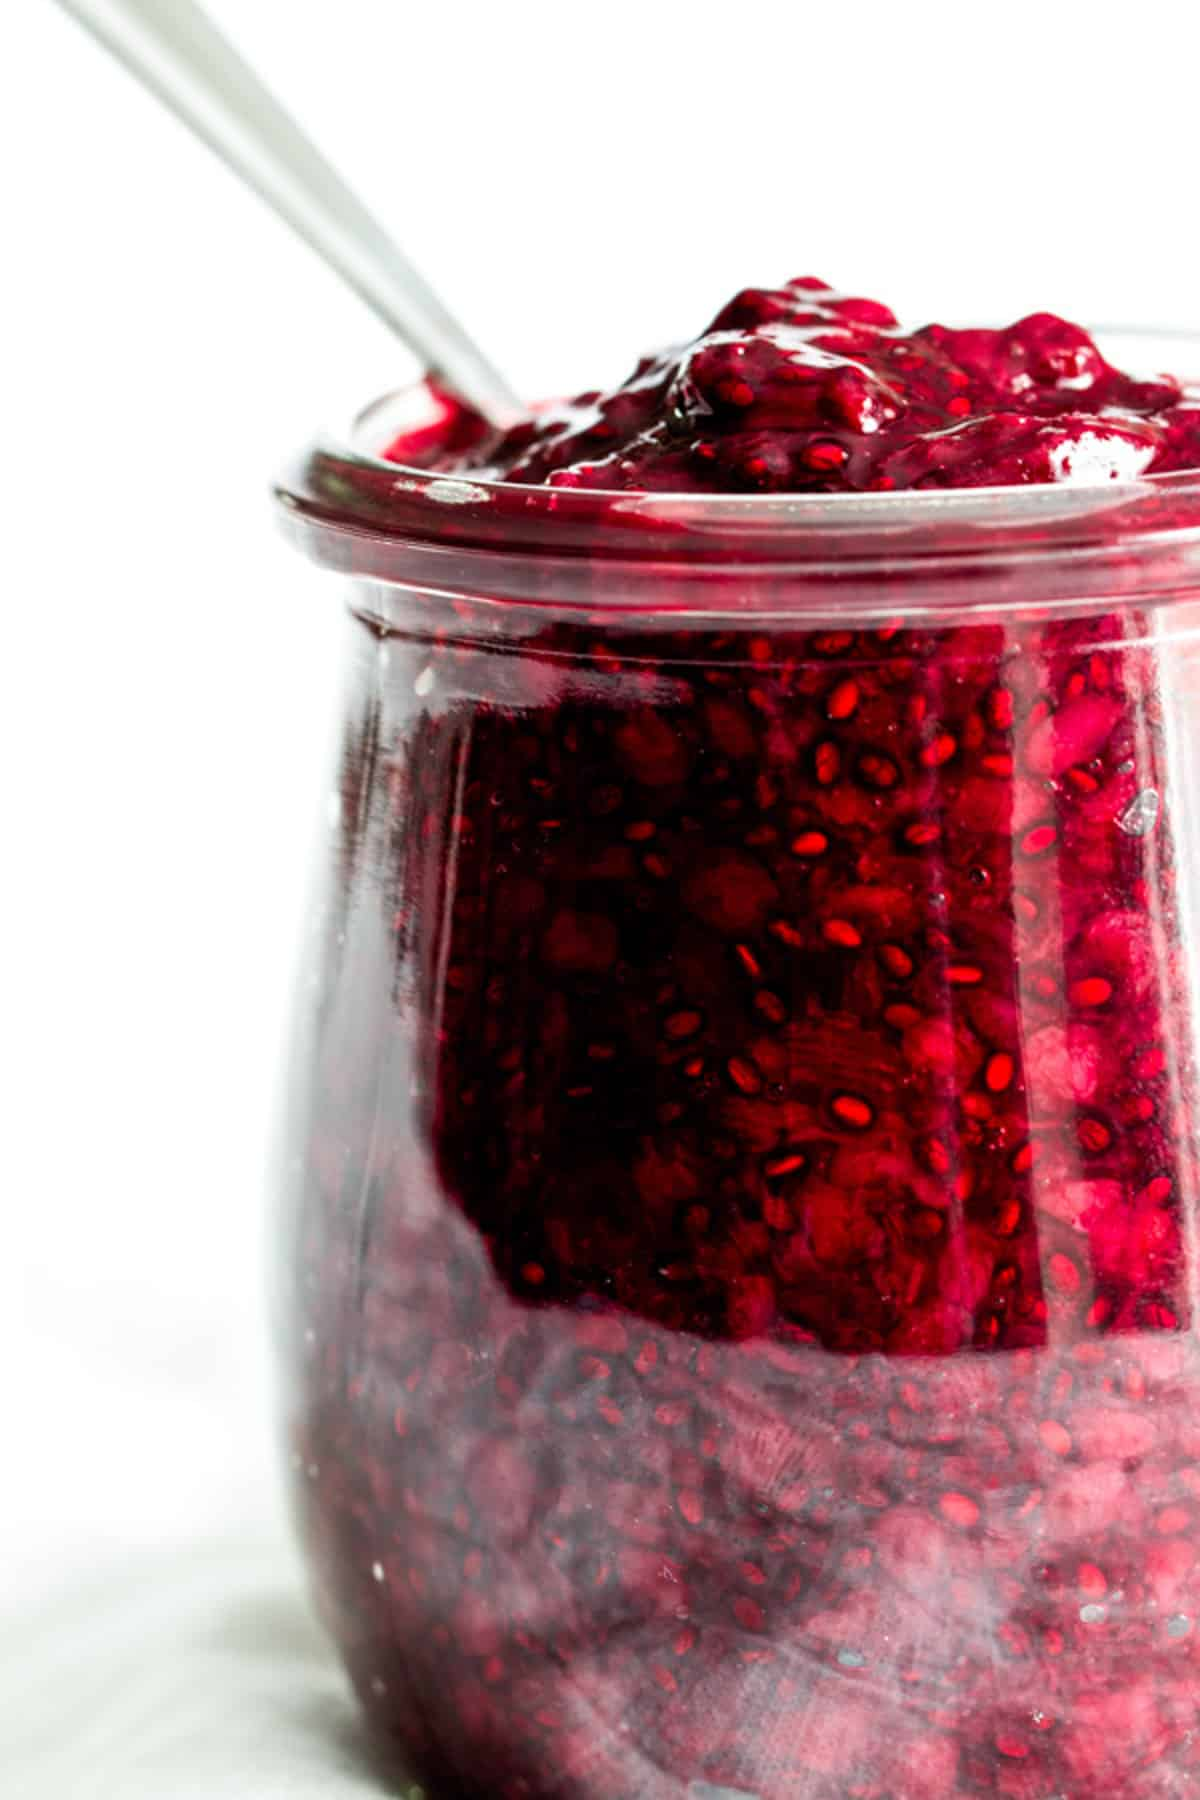 A close-up view of a jar of blackberry chia seed jam made with Oregon Marionberry blackberries.